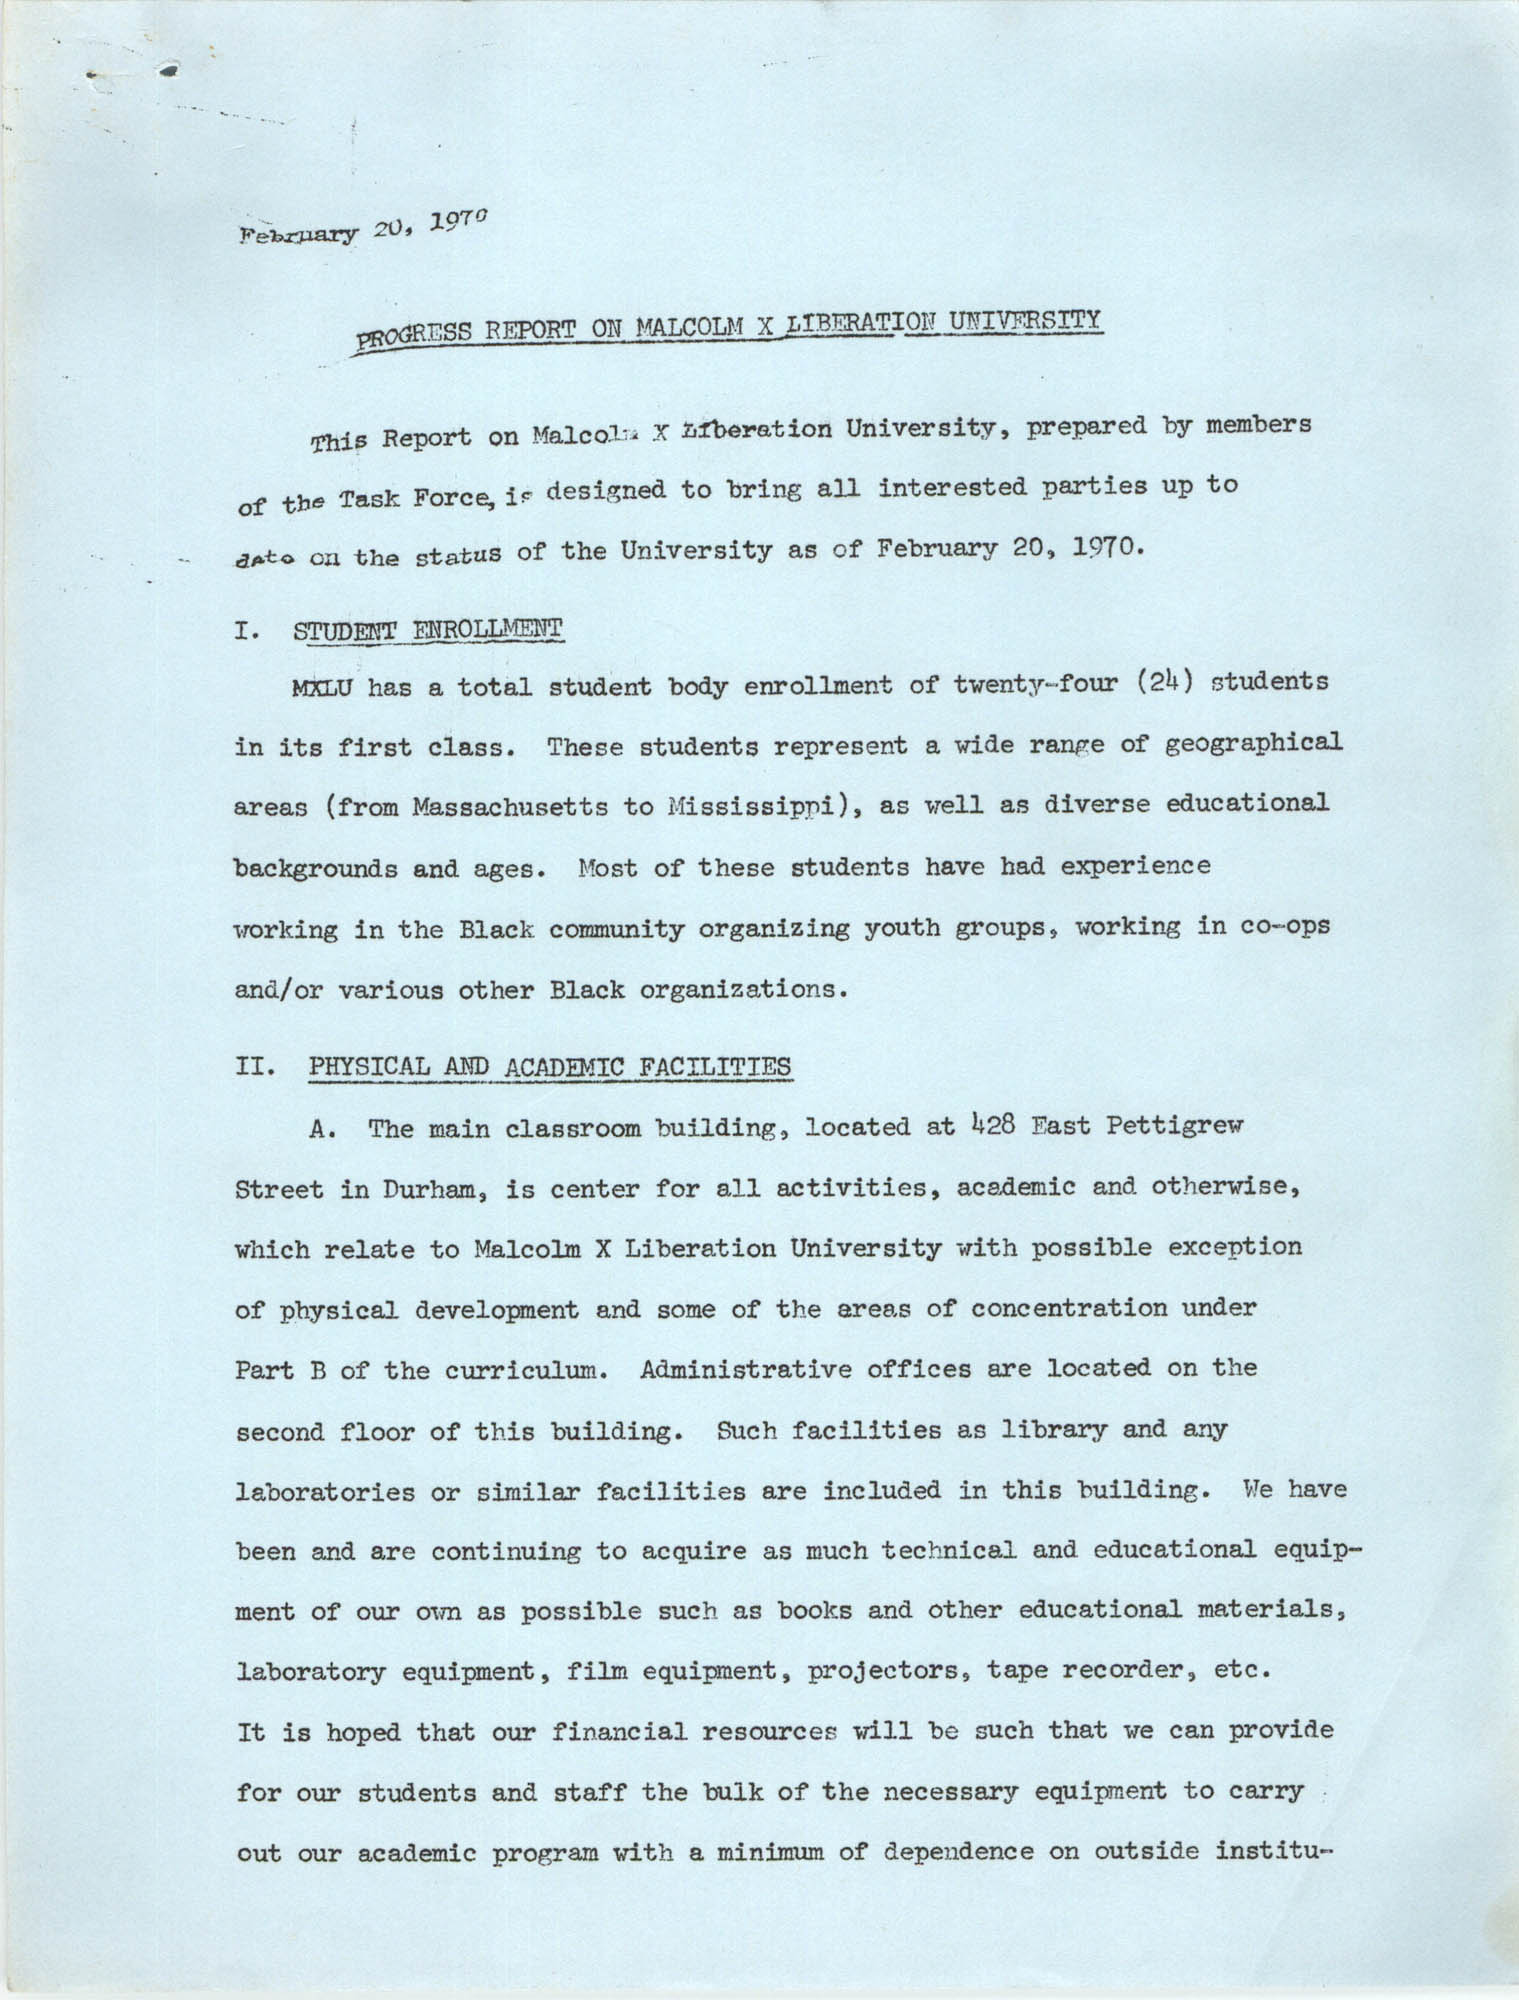 Progress Report on Malcolm X Liberation University, February 20, 1970